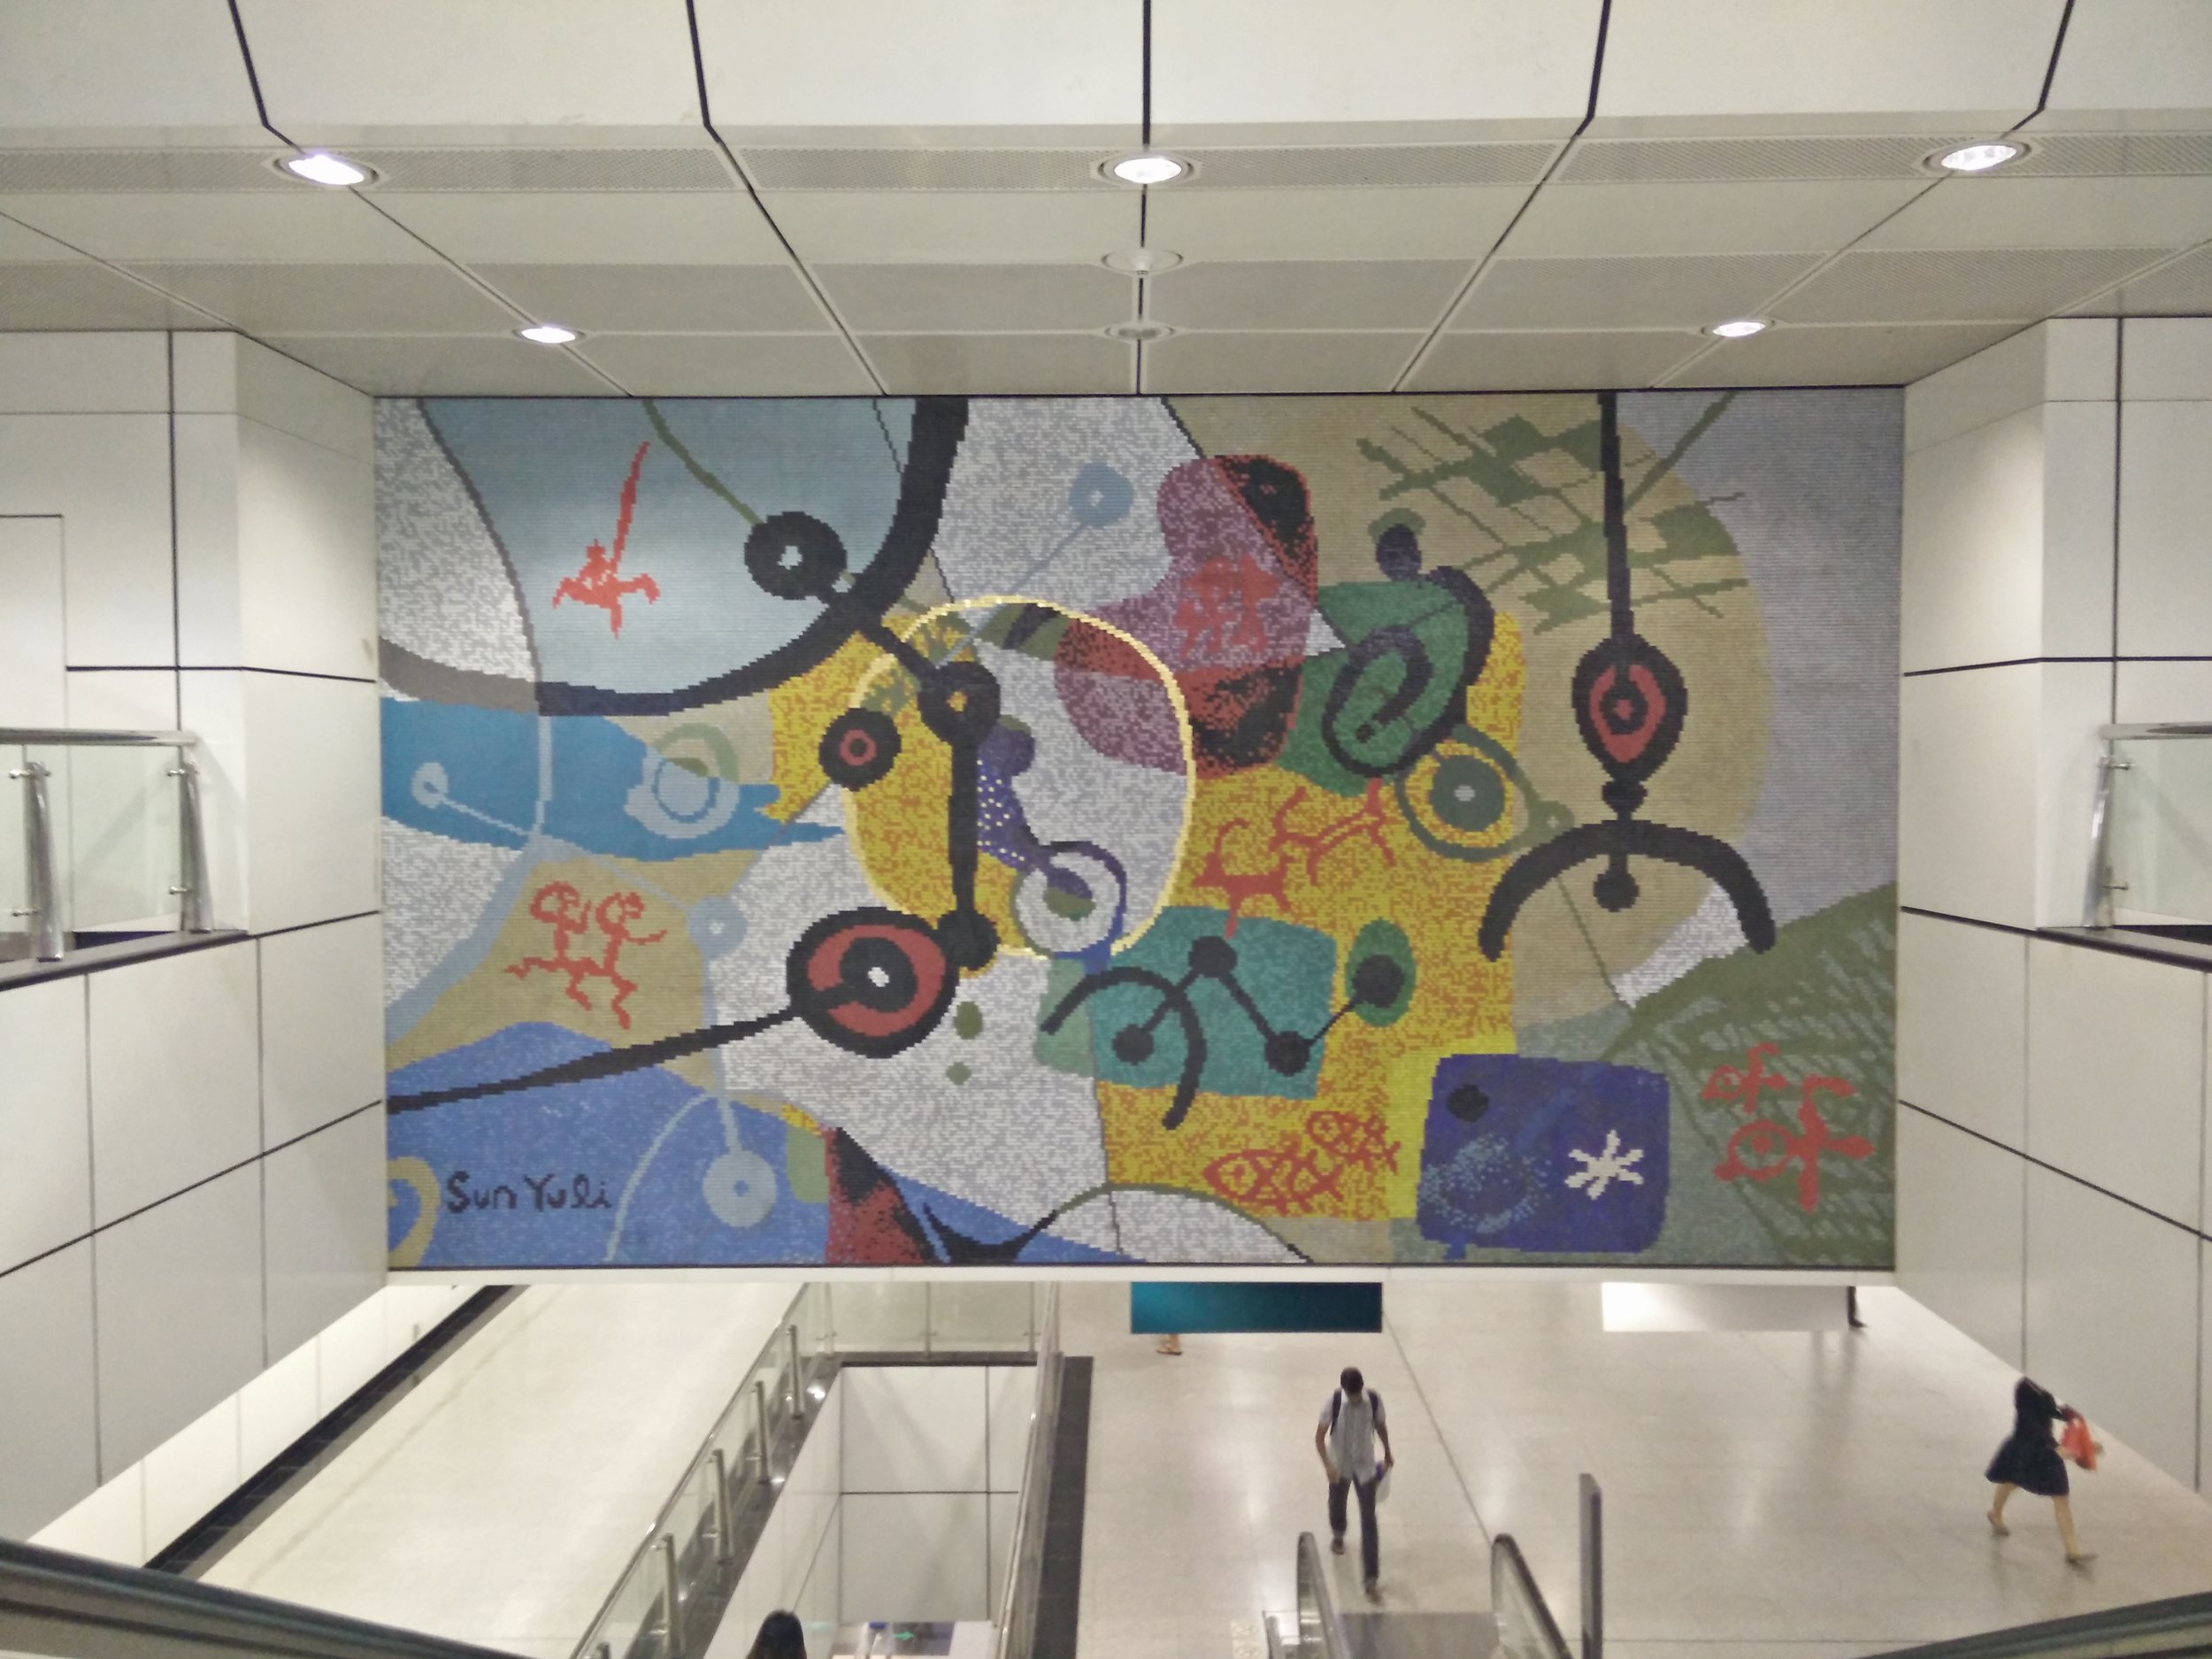 Another examle of the variety of the artworks in subway stations of Singapore - still figuring out the name of the artist